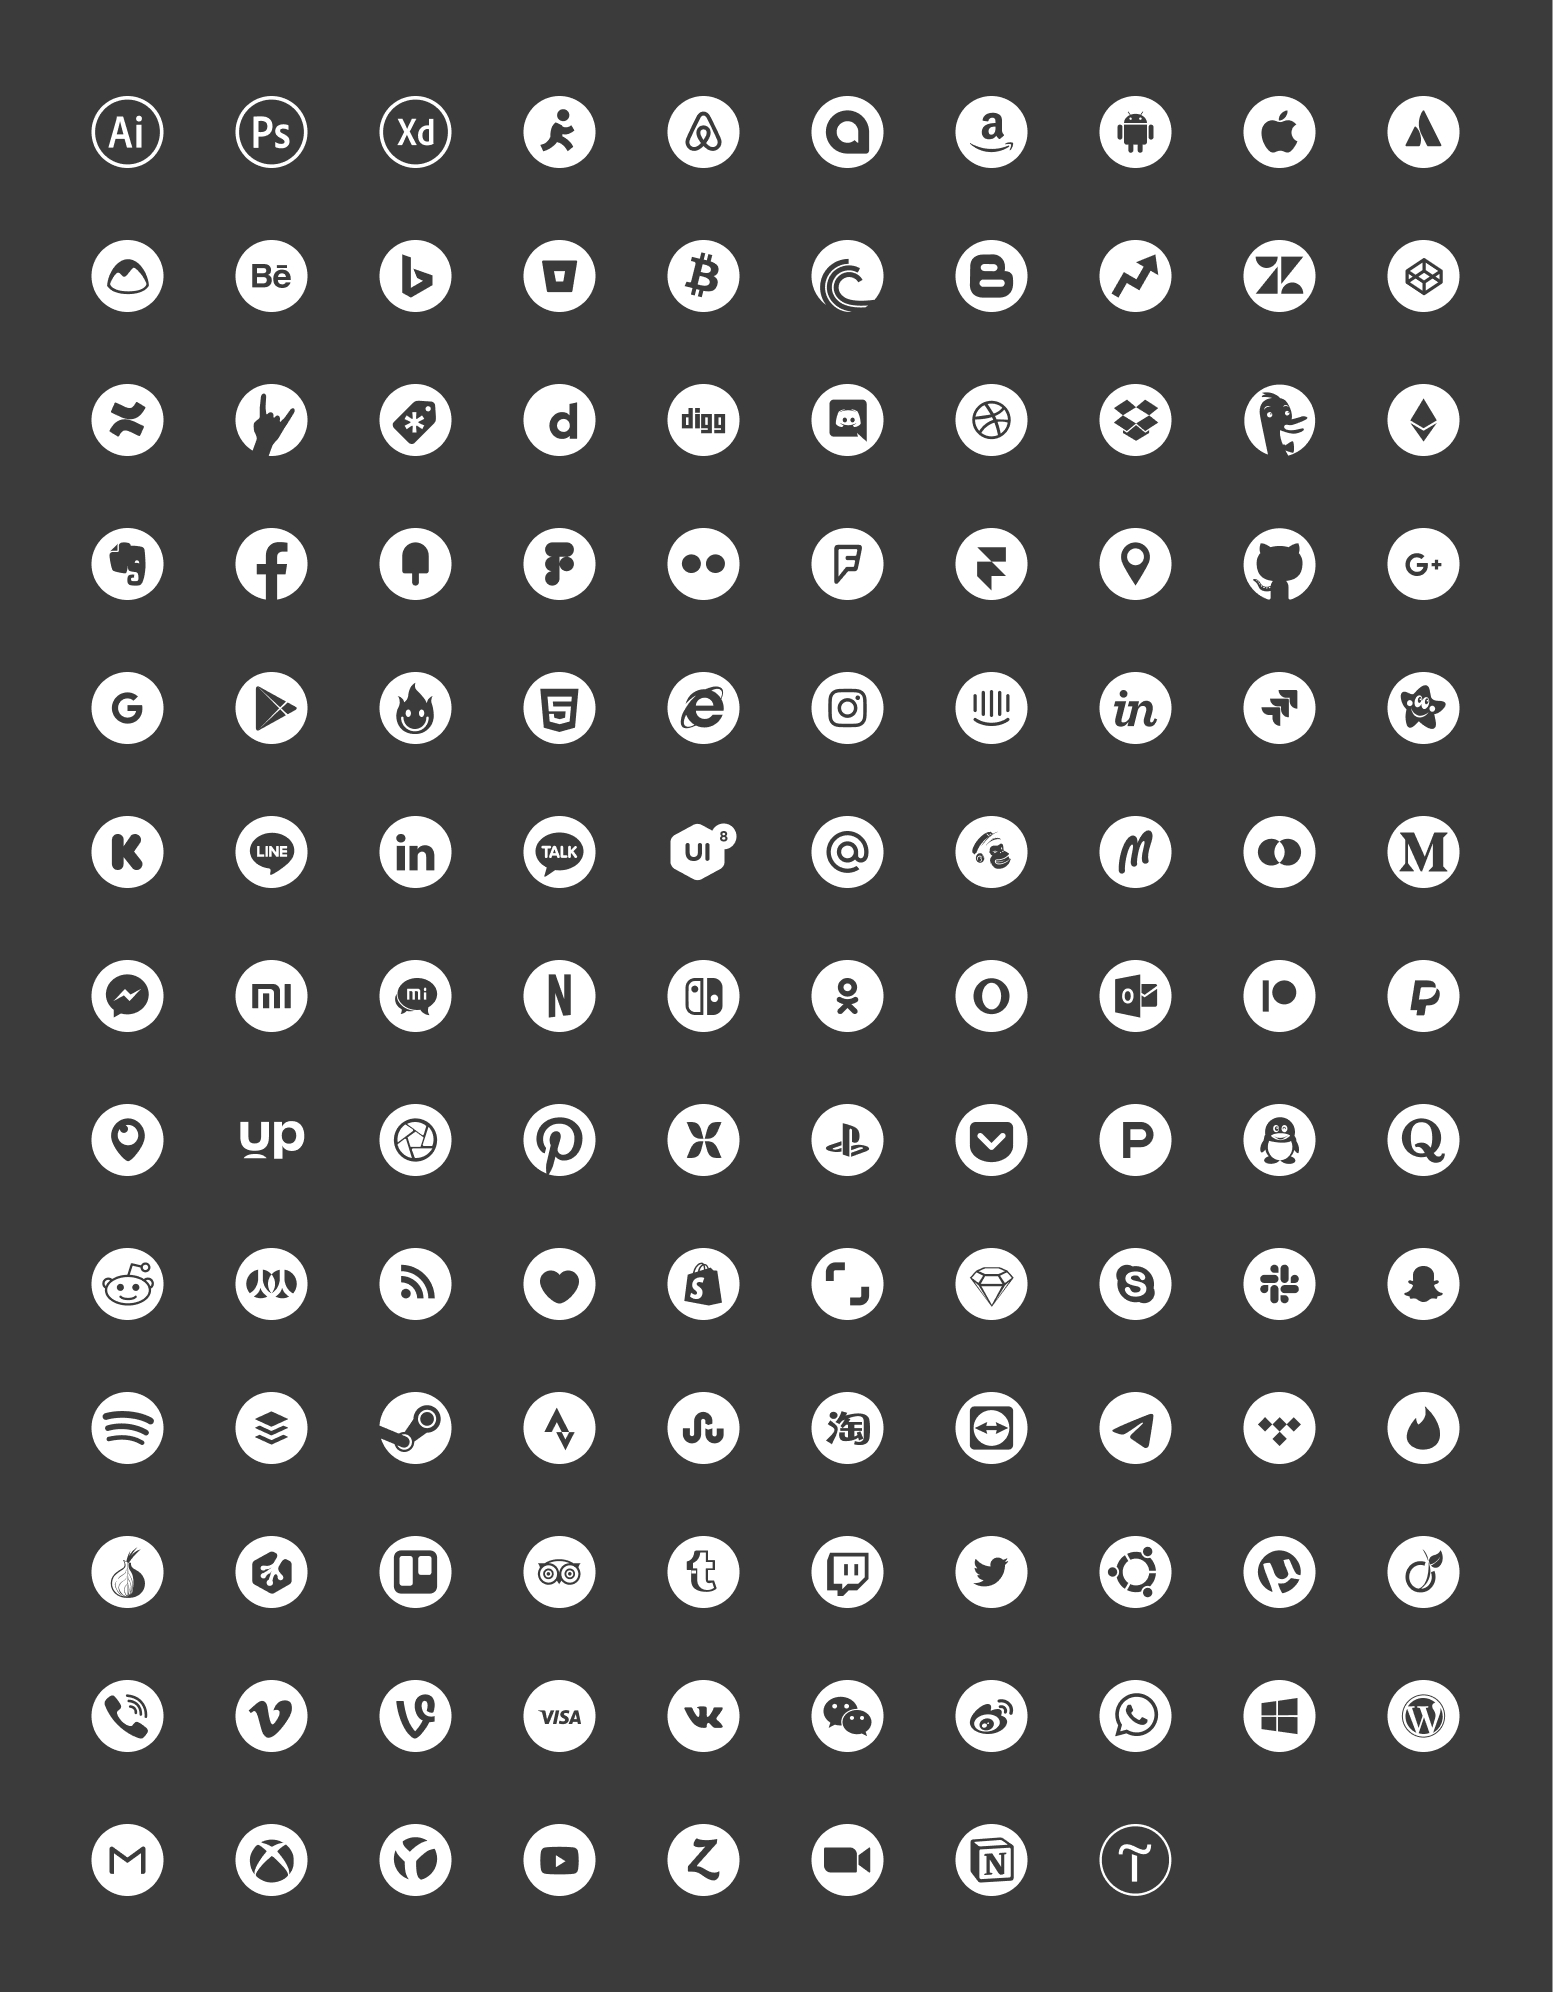 Free Social Icons - Over 100 x 3 Free social icons, color, white, black version